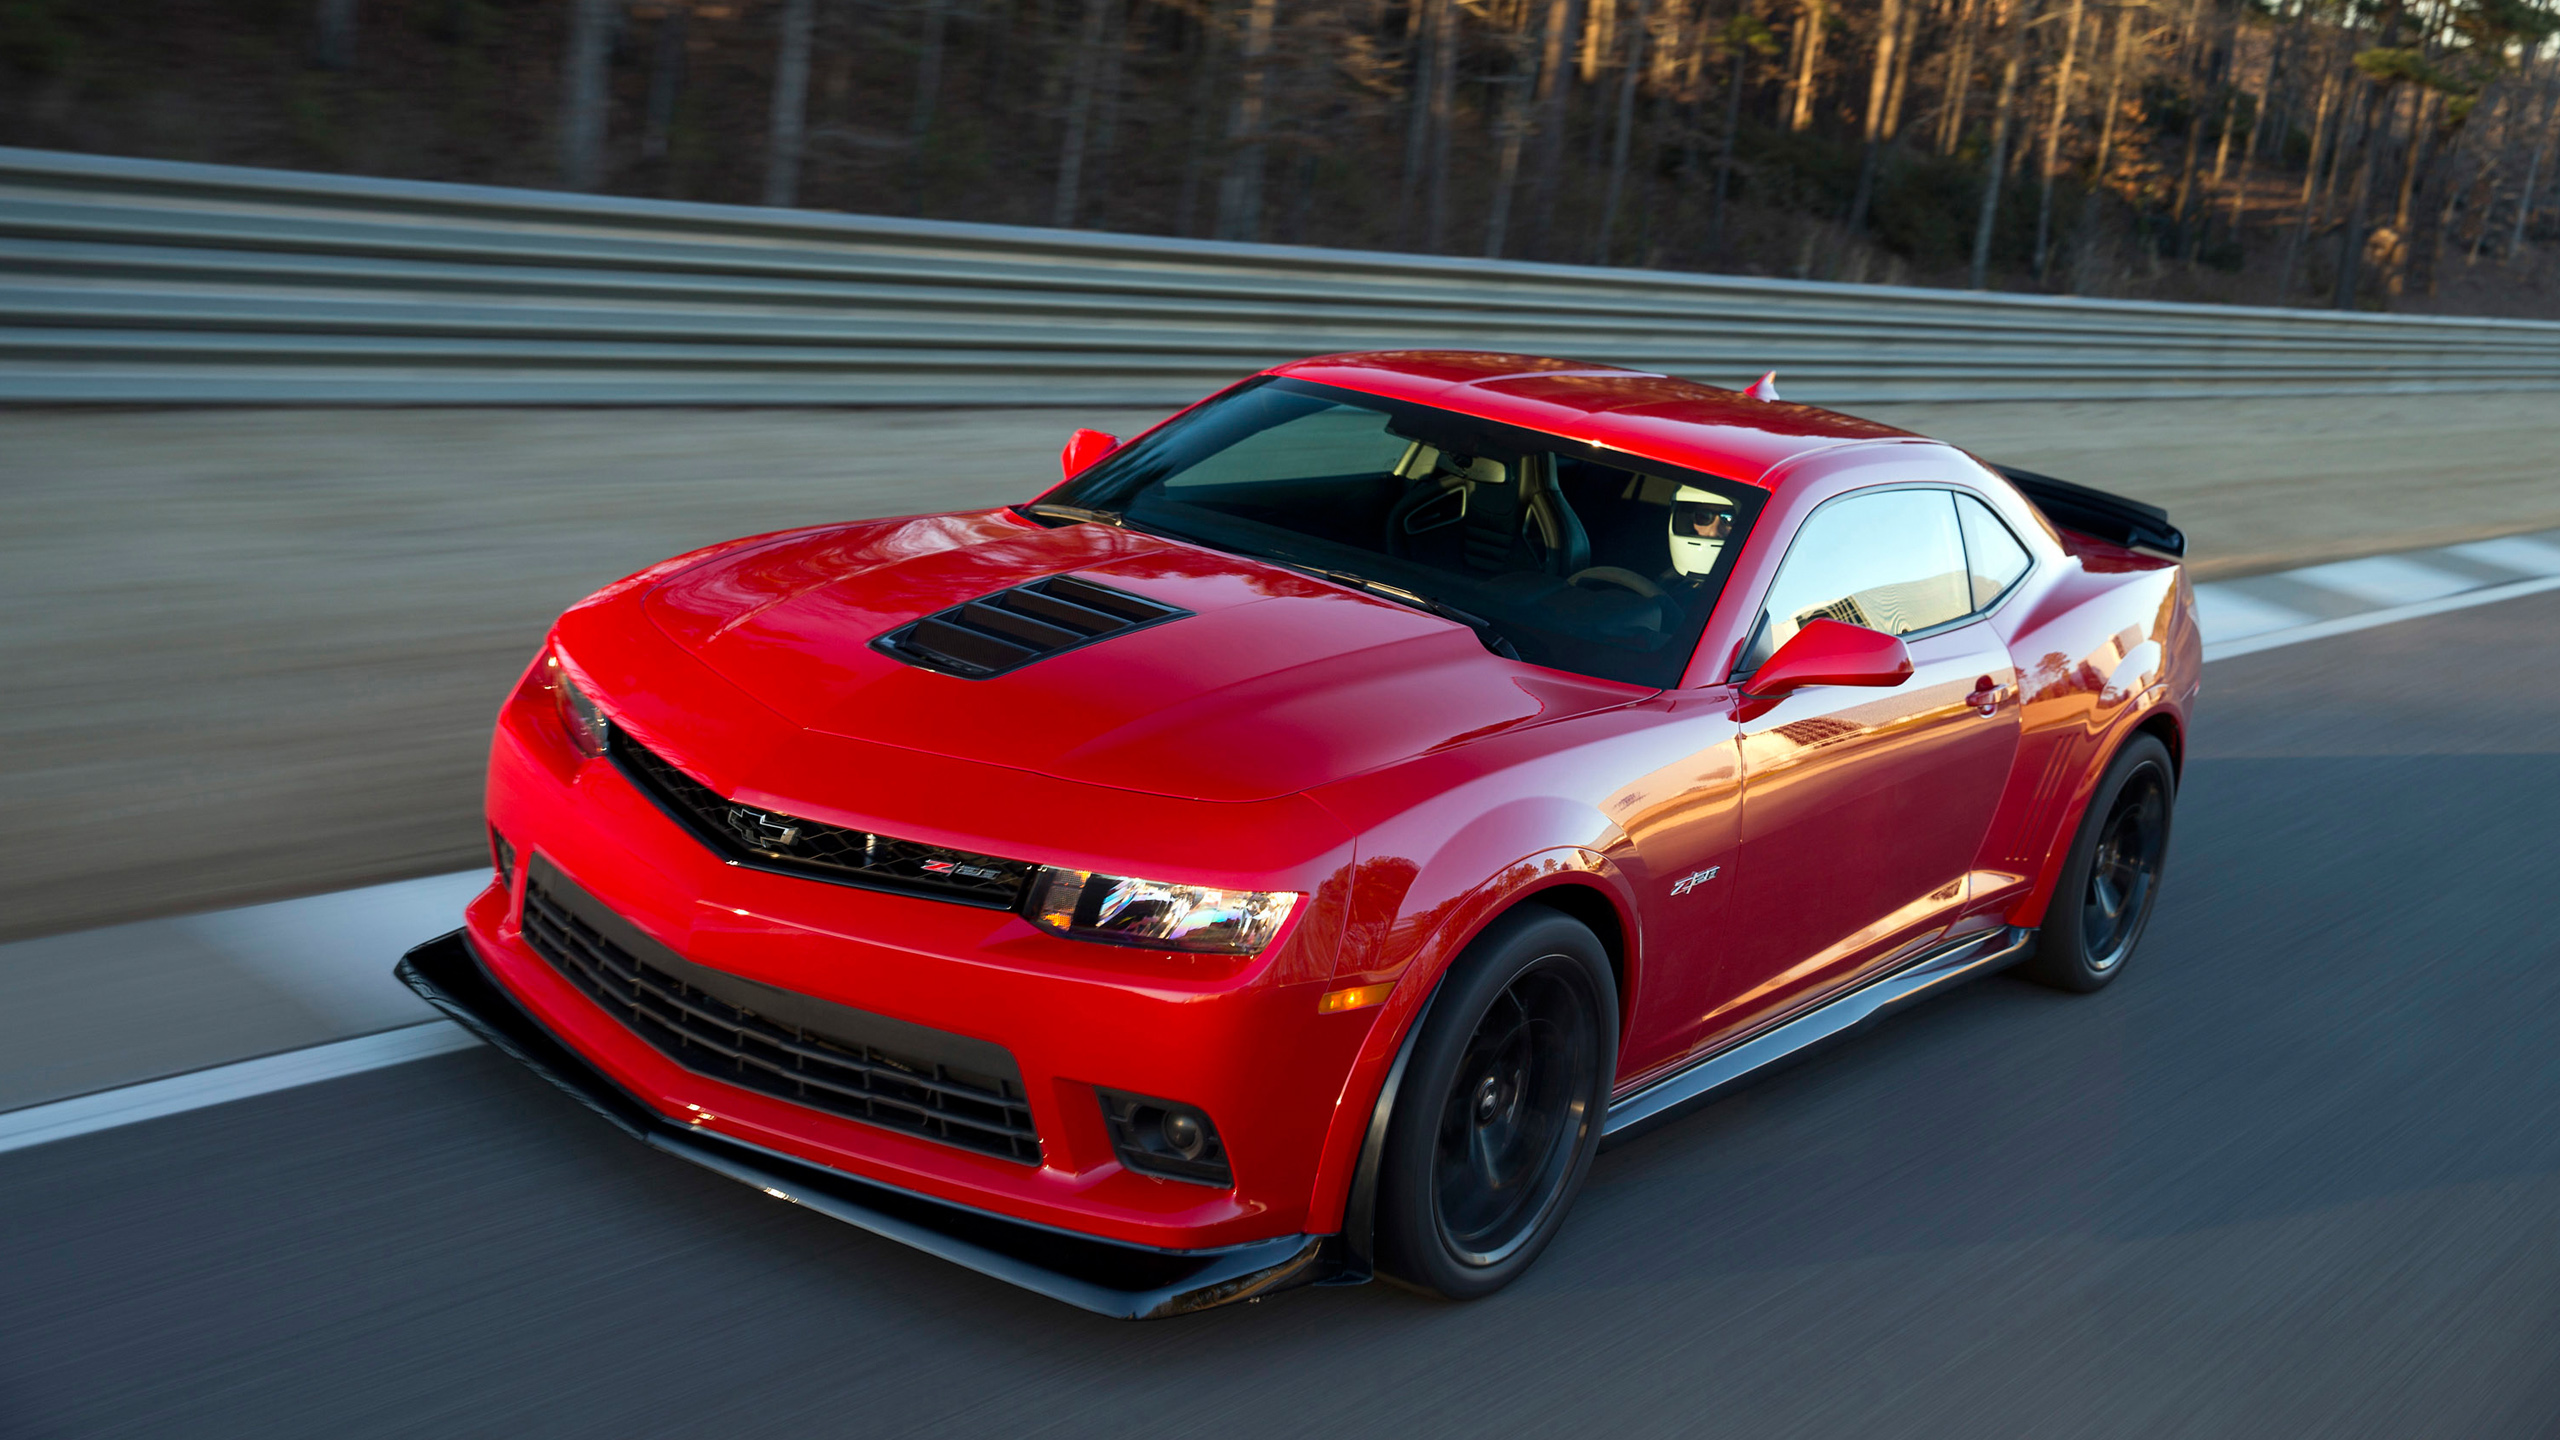 Chevrolet Camaro Z28 2014 Wallpaper Hd Car Wallpapers